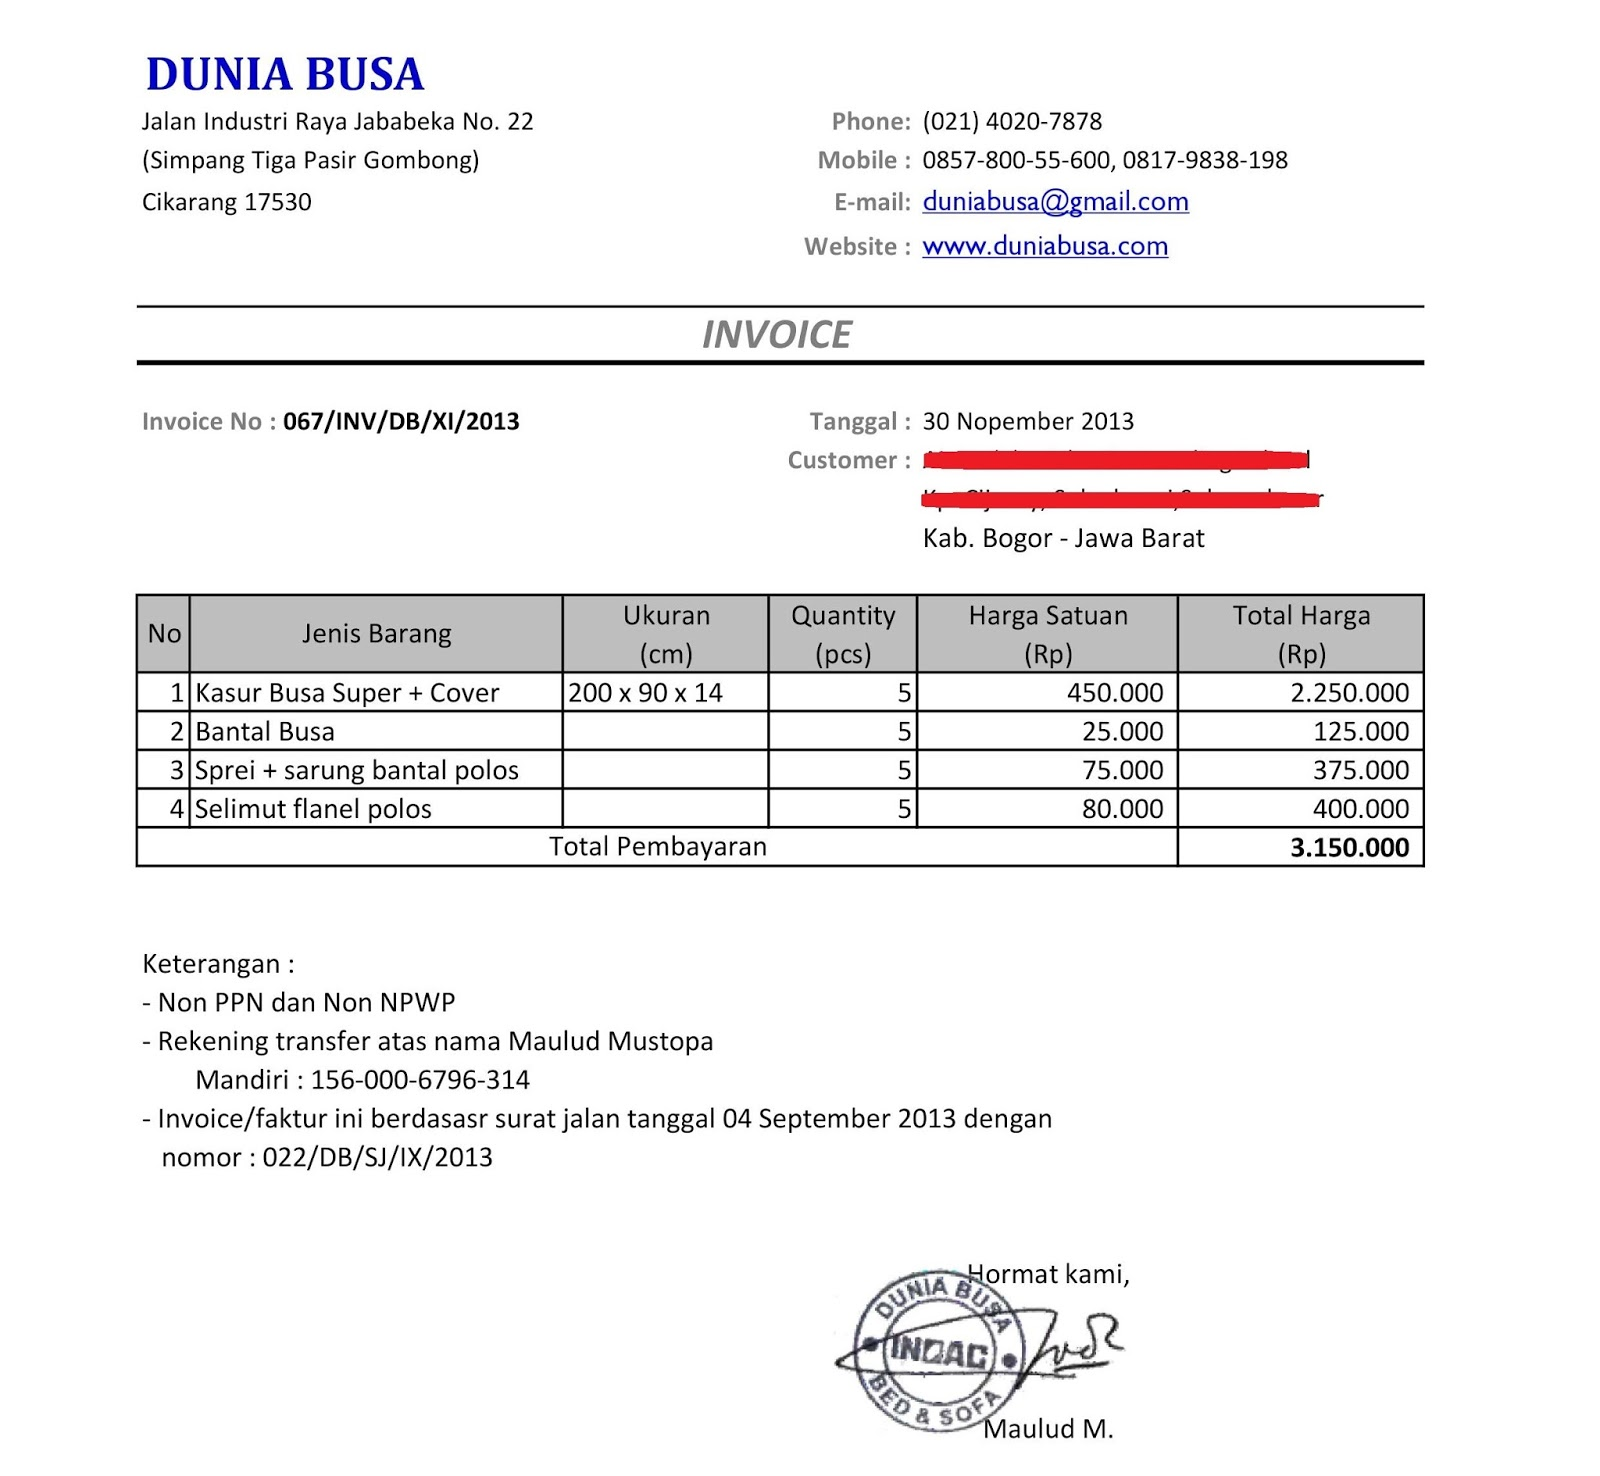 Usdgus  Prepossessing Free Invoice Online  Create Invoice Online  Invoice Template  With Marvelous Contoh Format Invoice Atau Surat Tagihan  Brankas Arsip  Free Invoice Online With Nice  Honda Accord Invoice Price Also Create Invoice Excel In Addition Event Planning Invoice Template And Get Dealer Invoice Price As Well As Trucking Invoice Template Free Additionally Free Invoice Software For Small Business From Sklepco With Usdgus  Marvelous Free Invoice Online  Create Invoice Online  Invoice Template  With Nice Contoh Format Invoice Atau Surat Tagihan  Brankas Arsip  Free Invoice Online And Prepossessing  Honda Accord Invoice Price Also Create Invoice Excel In Addition Event Planning Invoice Template From Sklepco